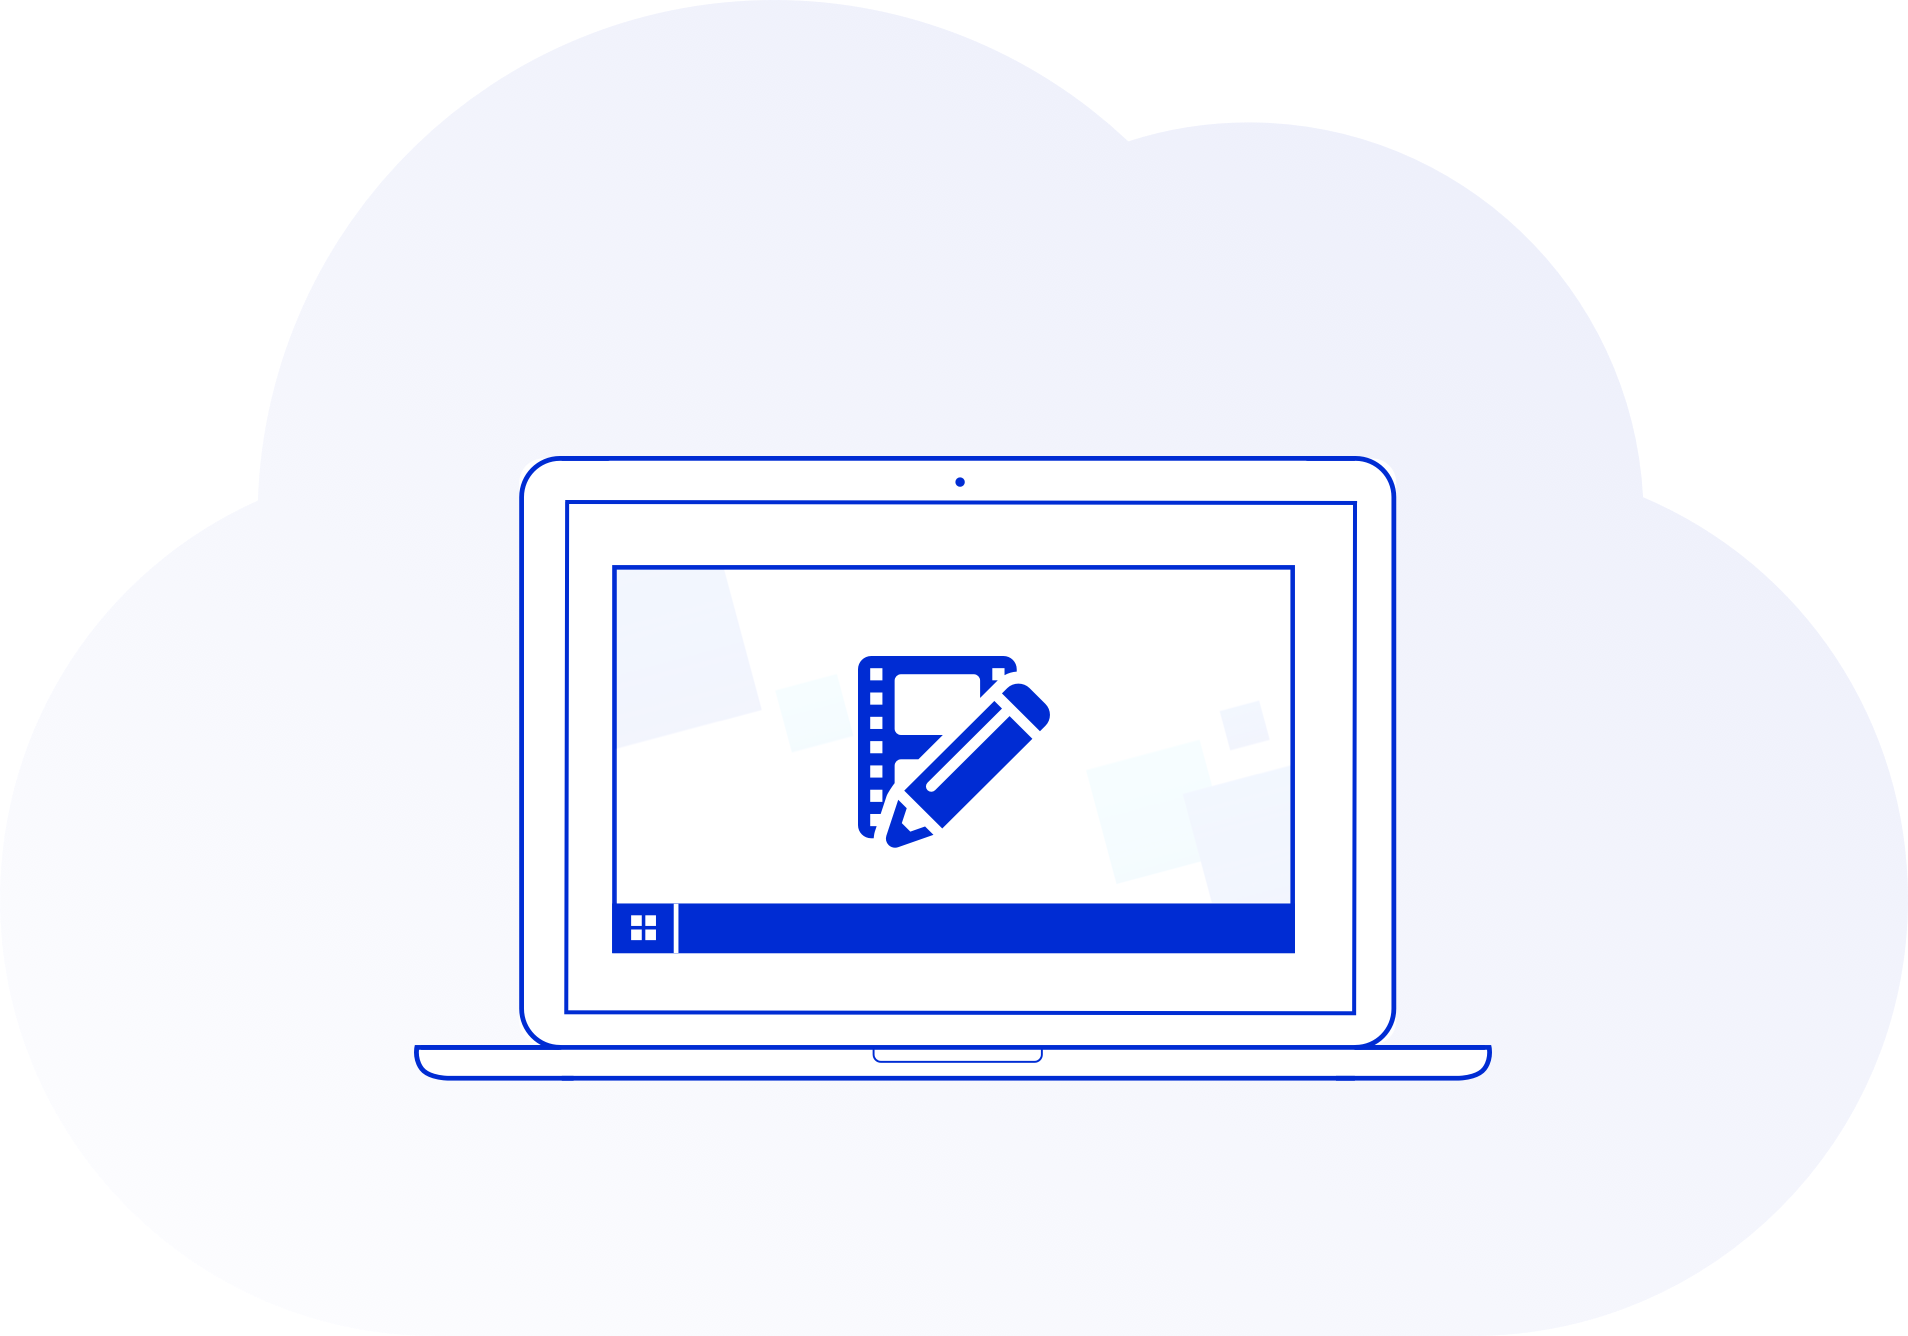 As part of Cloudalize's GPU Private Cloud solution, you have Cloudalize's Cloud Workstations (Desktop-as-a-Service) solution. On-premises, GPU-powered for remote working and distance learning.